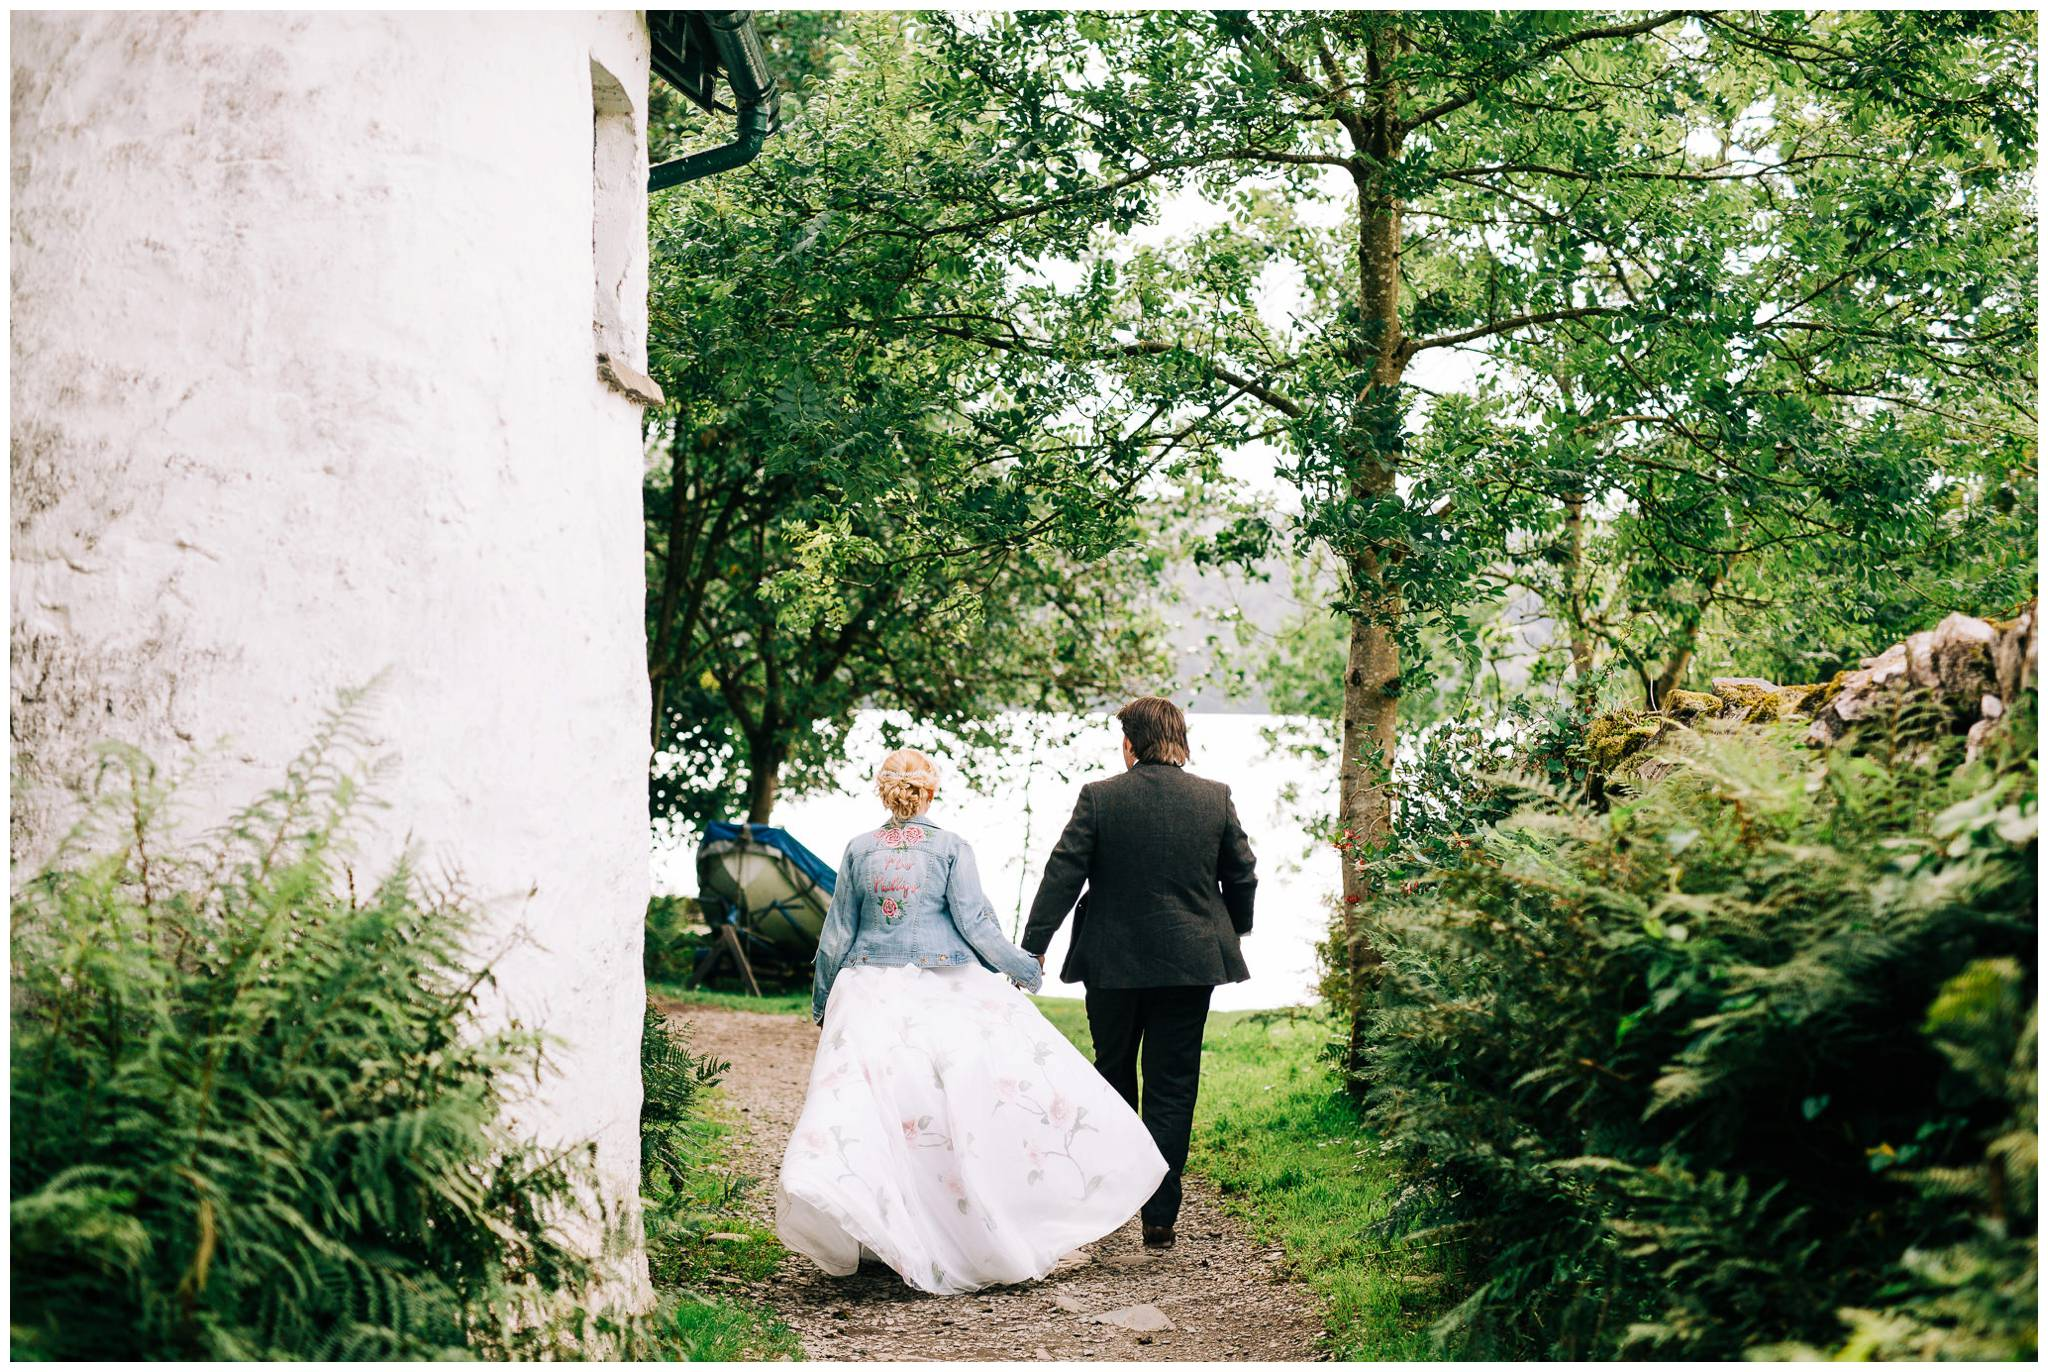 Natural wedding photography Manchester - Clare Robinson Photography_0203.jpg